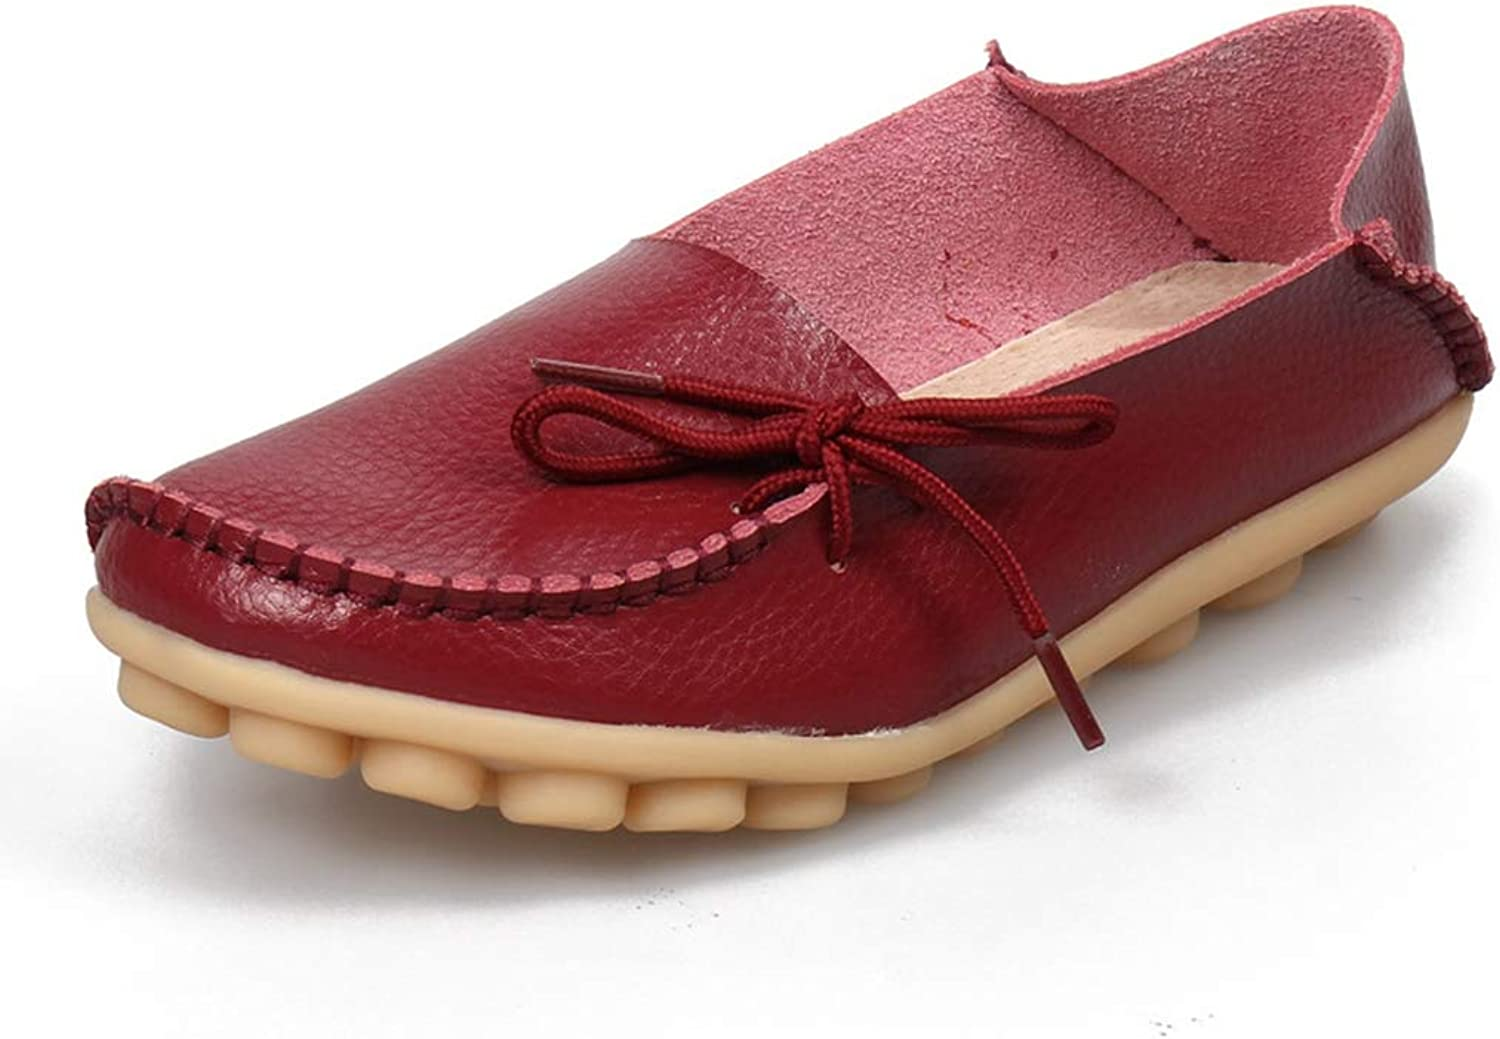 Kyle Walsh Pa Women Soft Flat shoes Casual Loafers Female Driving Ballet Footwear